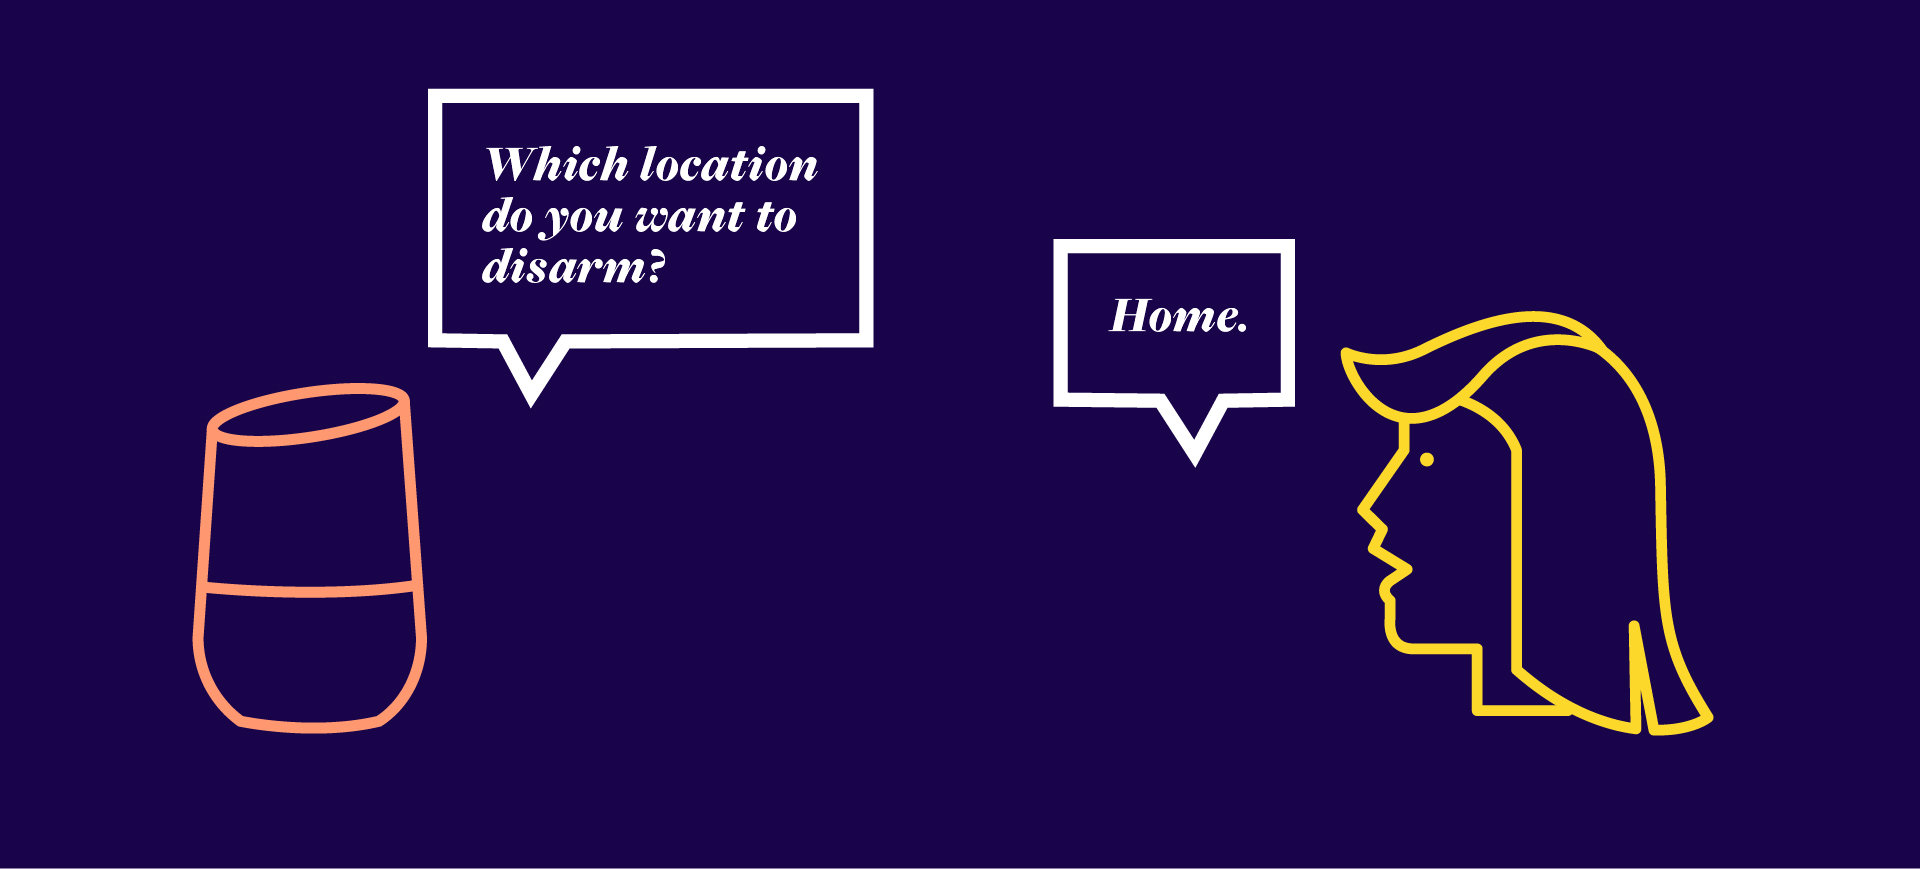 Voice interface Conversation, Google Home: Which location do you want to disarm? User: Home.